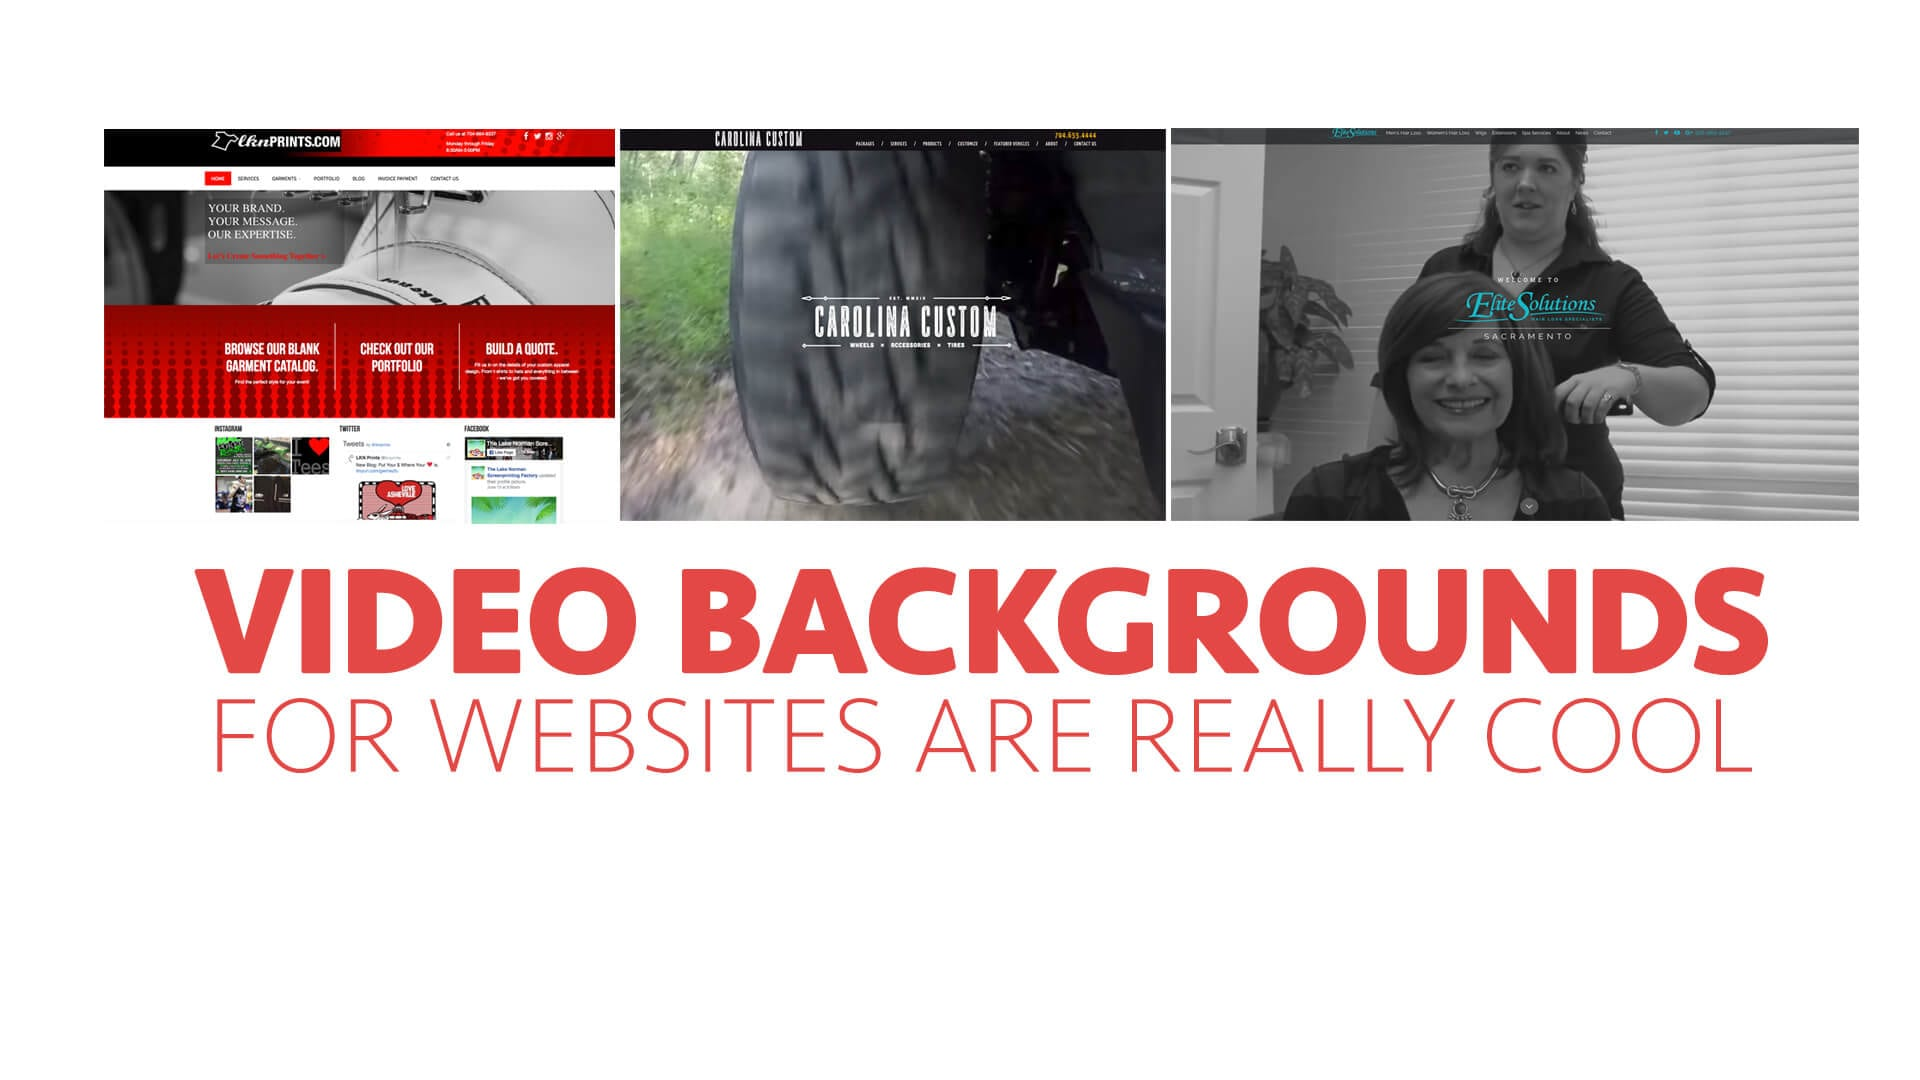 Video Backgrounds for Websites are really Cool!